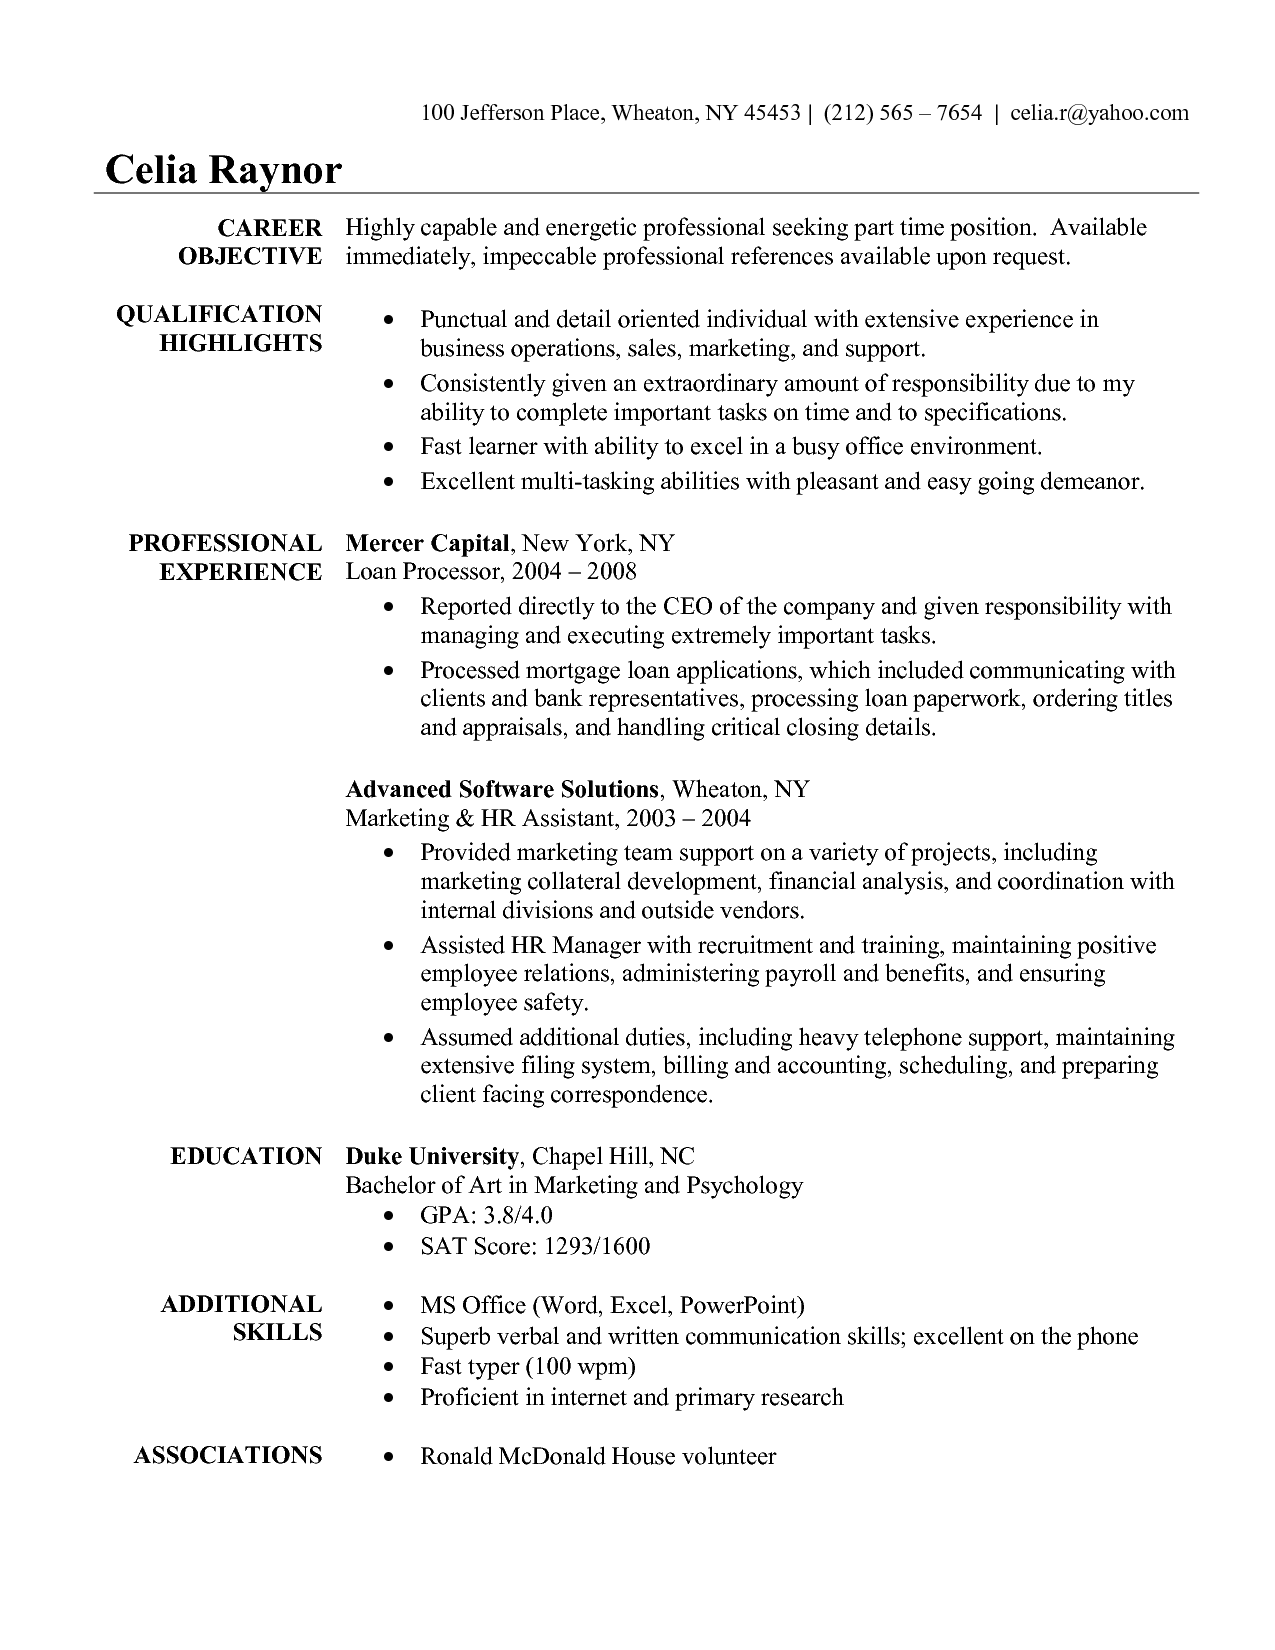 Administrative Assistant Resume Sample Resume Sample For Administrative Assistant Resume Samples For